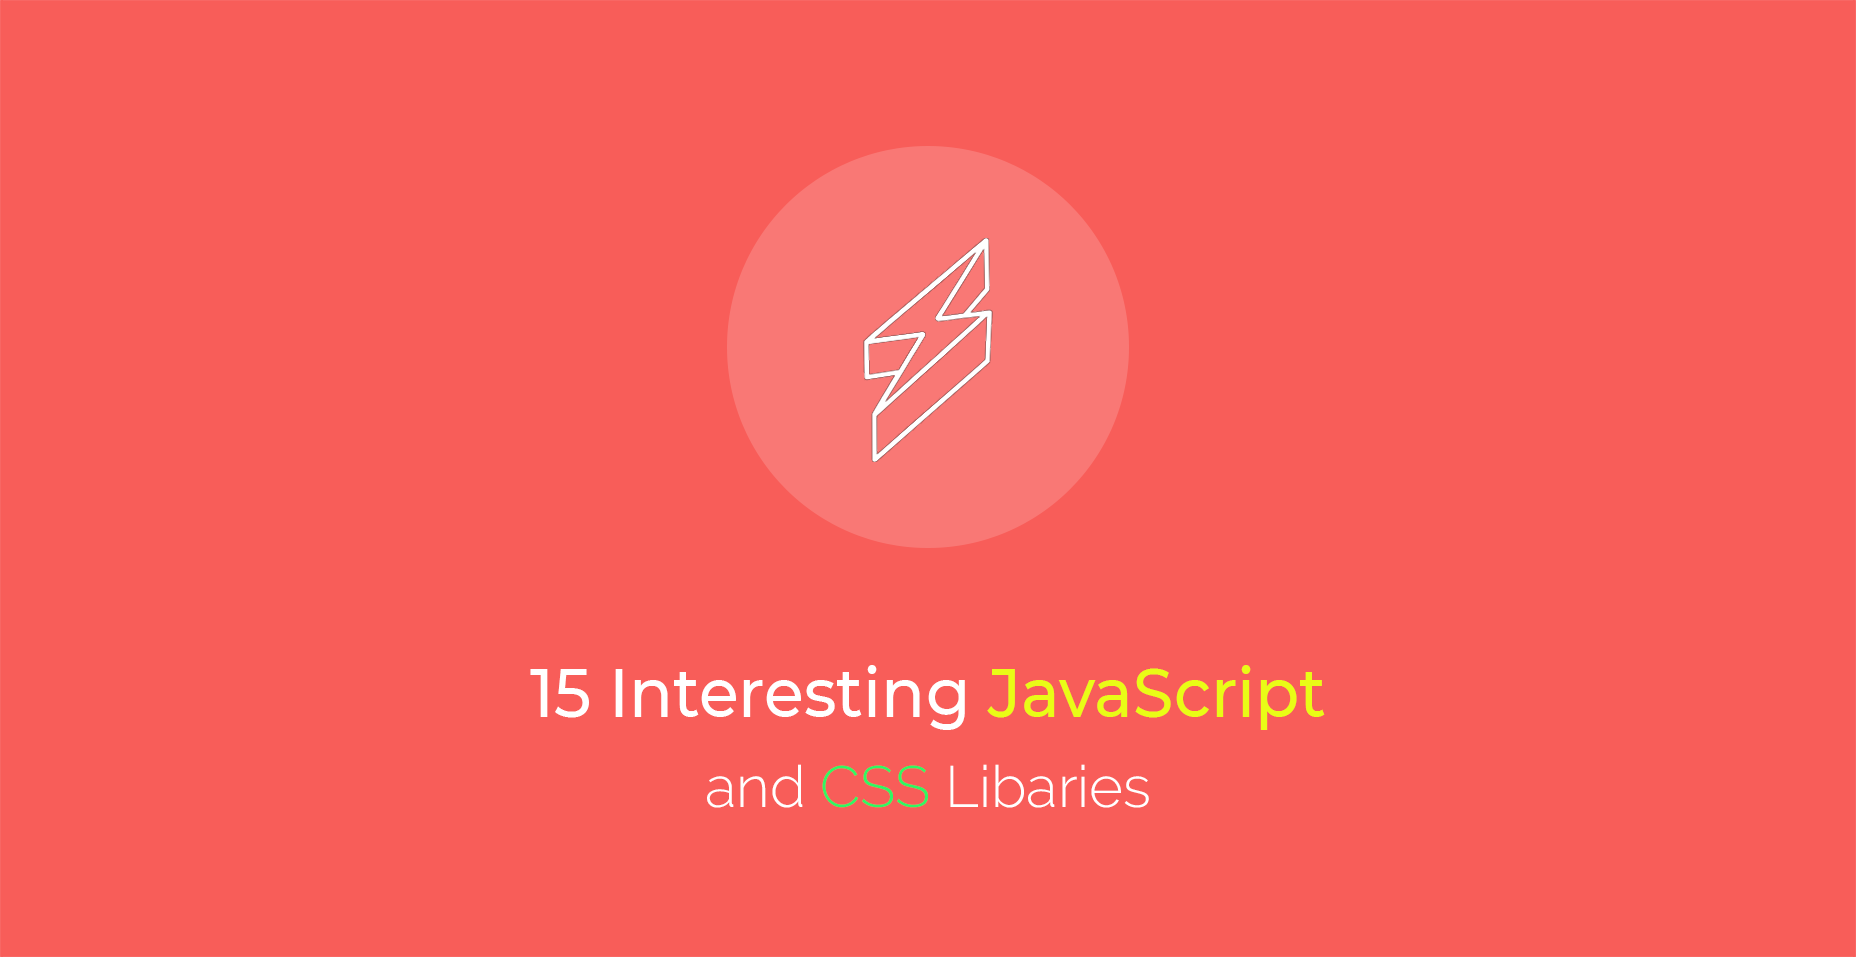 15 Interesting JavaScript and CSS Libraries for May 2018